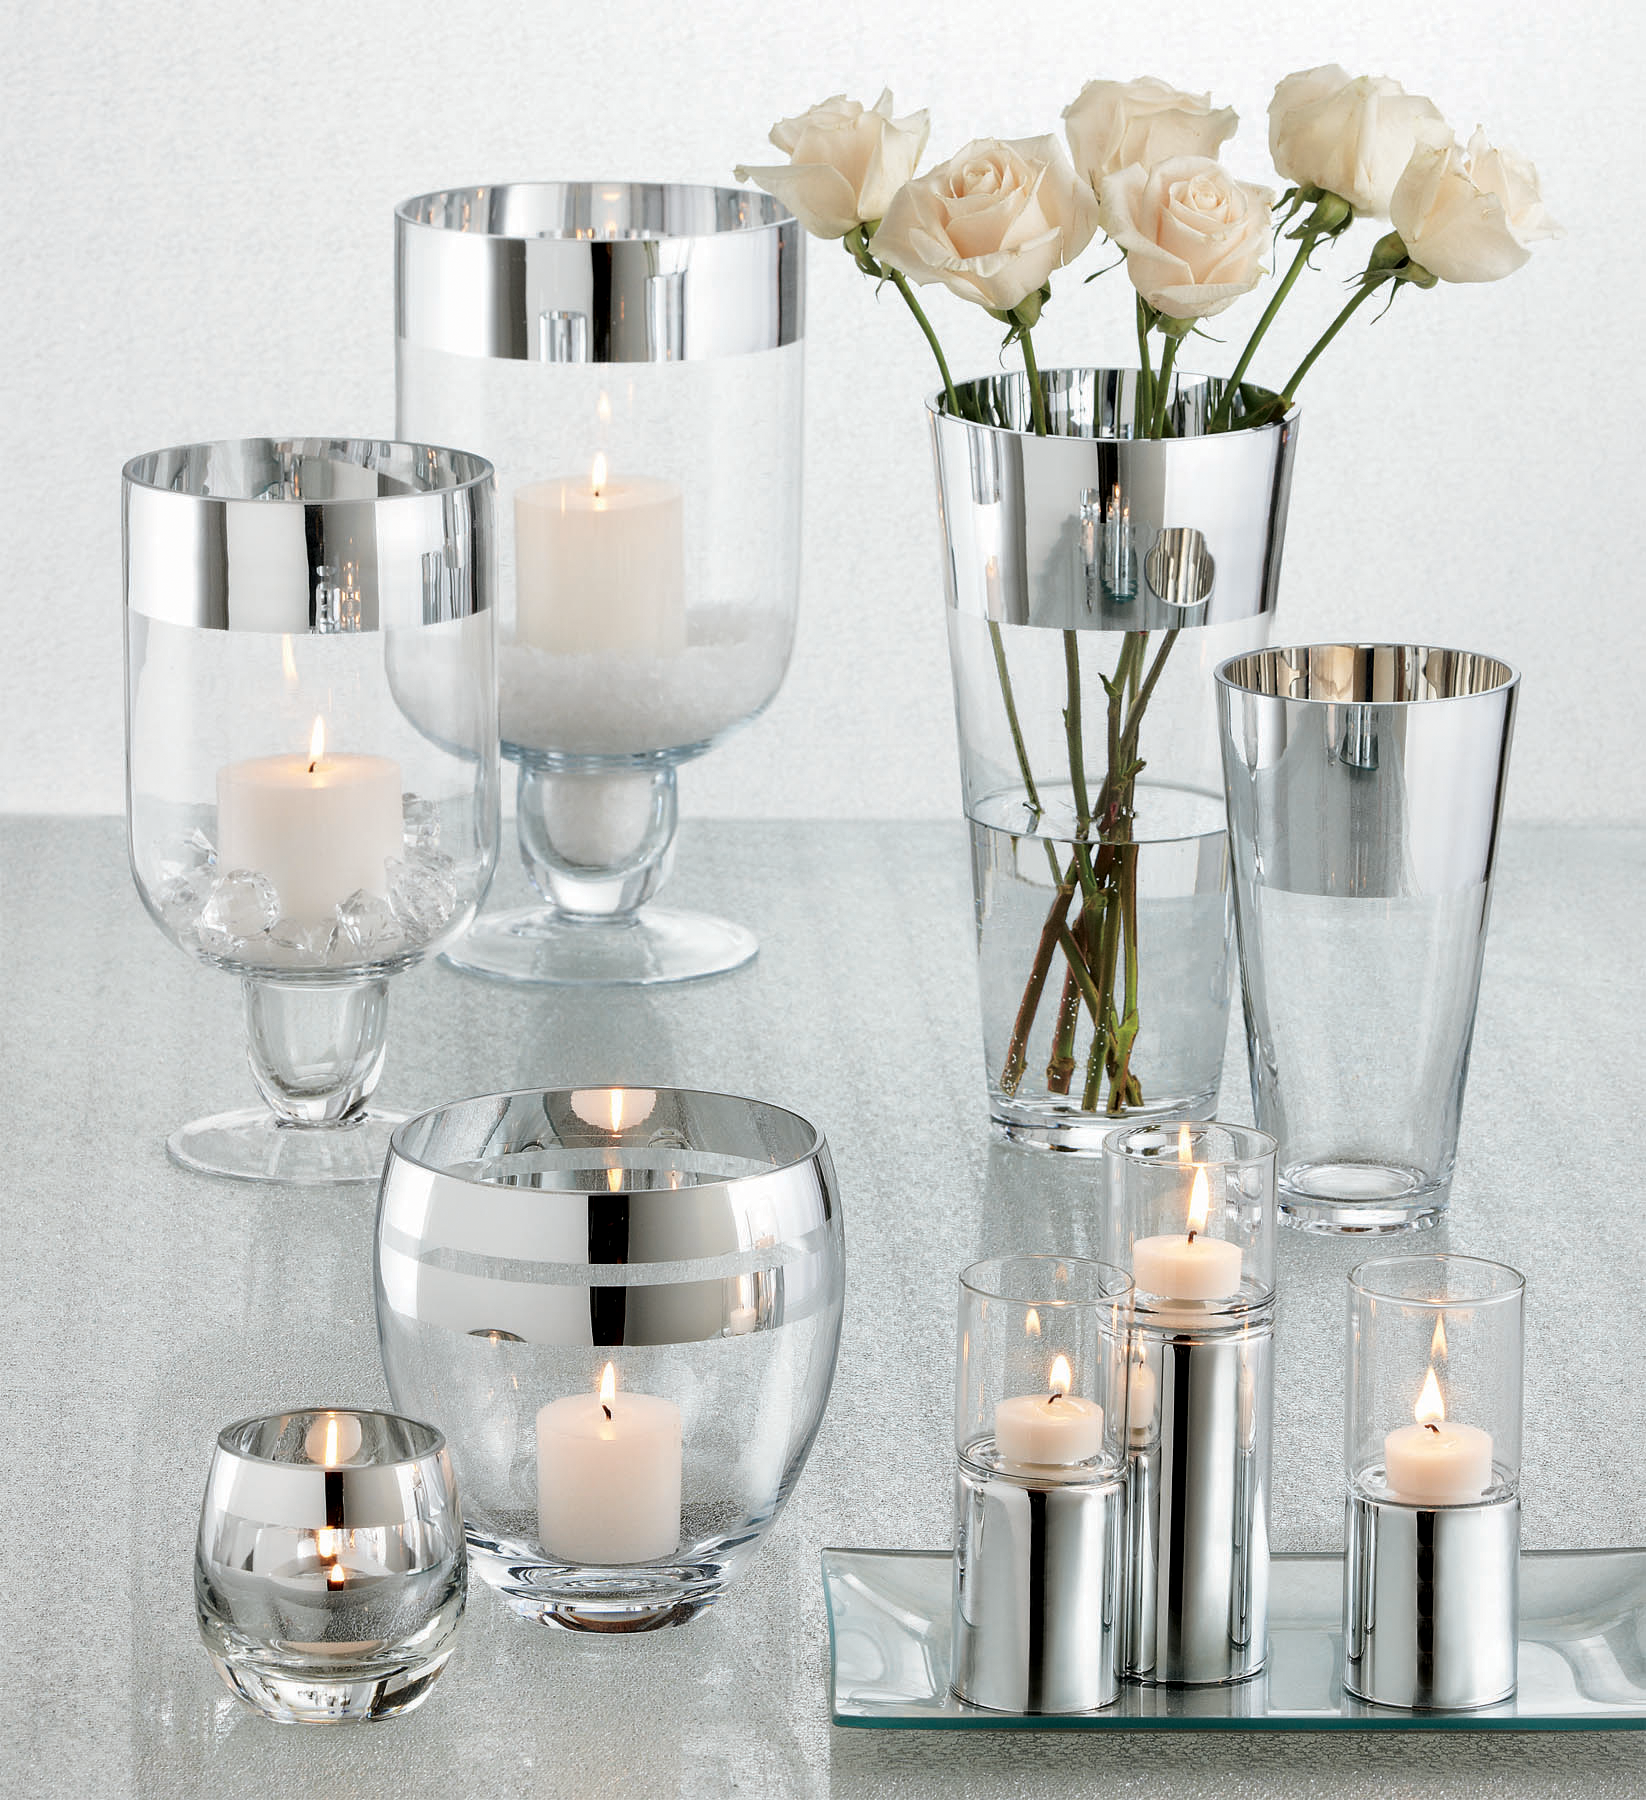 Home Decor Ideas With Vases: Shimmering Tabletop Centerpieces And Home Decor: Silver